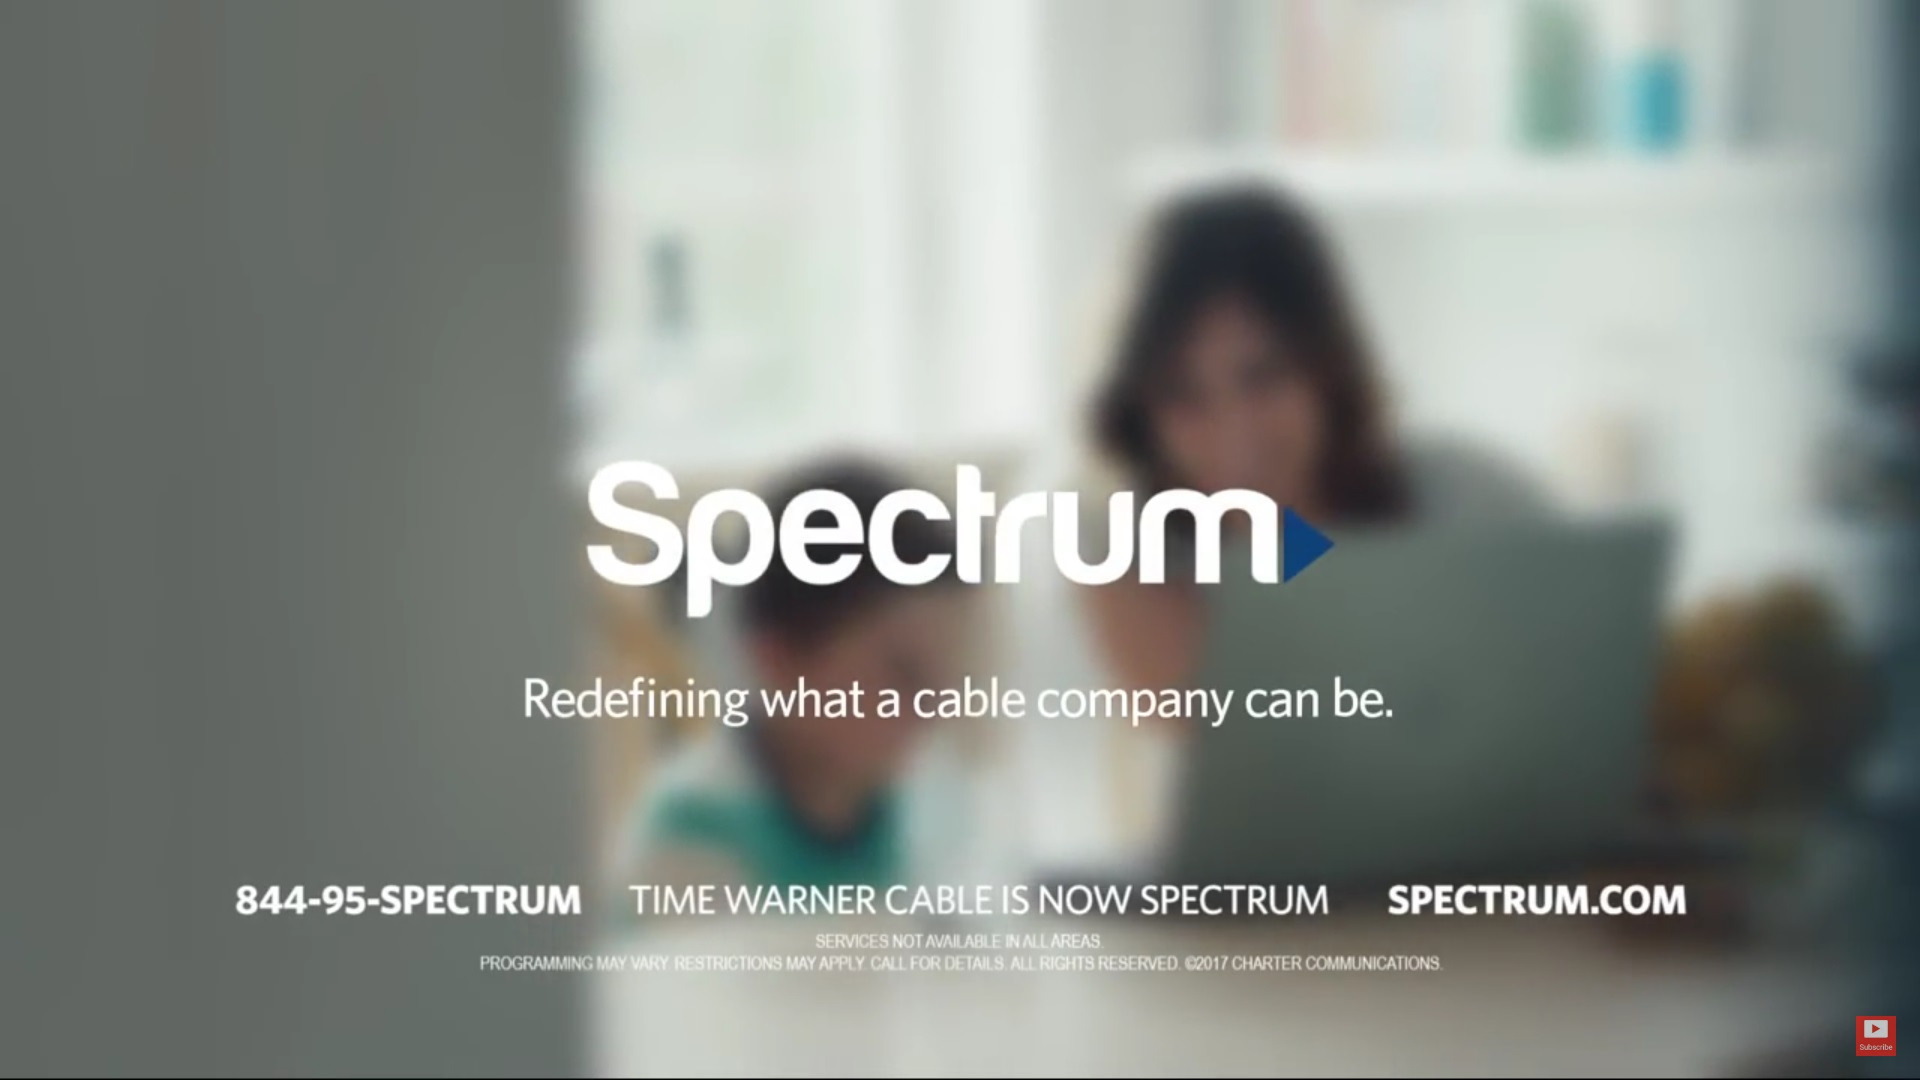 Spectrum Video Ad During Madden Pro Team Club Series (Photo: YouTube)